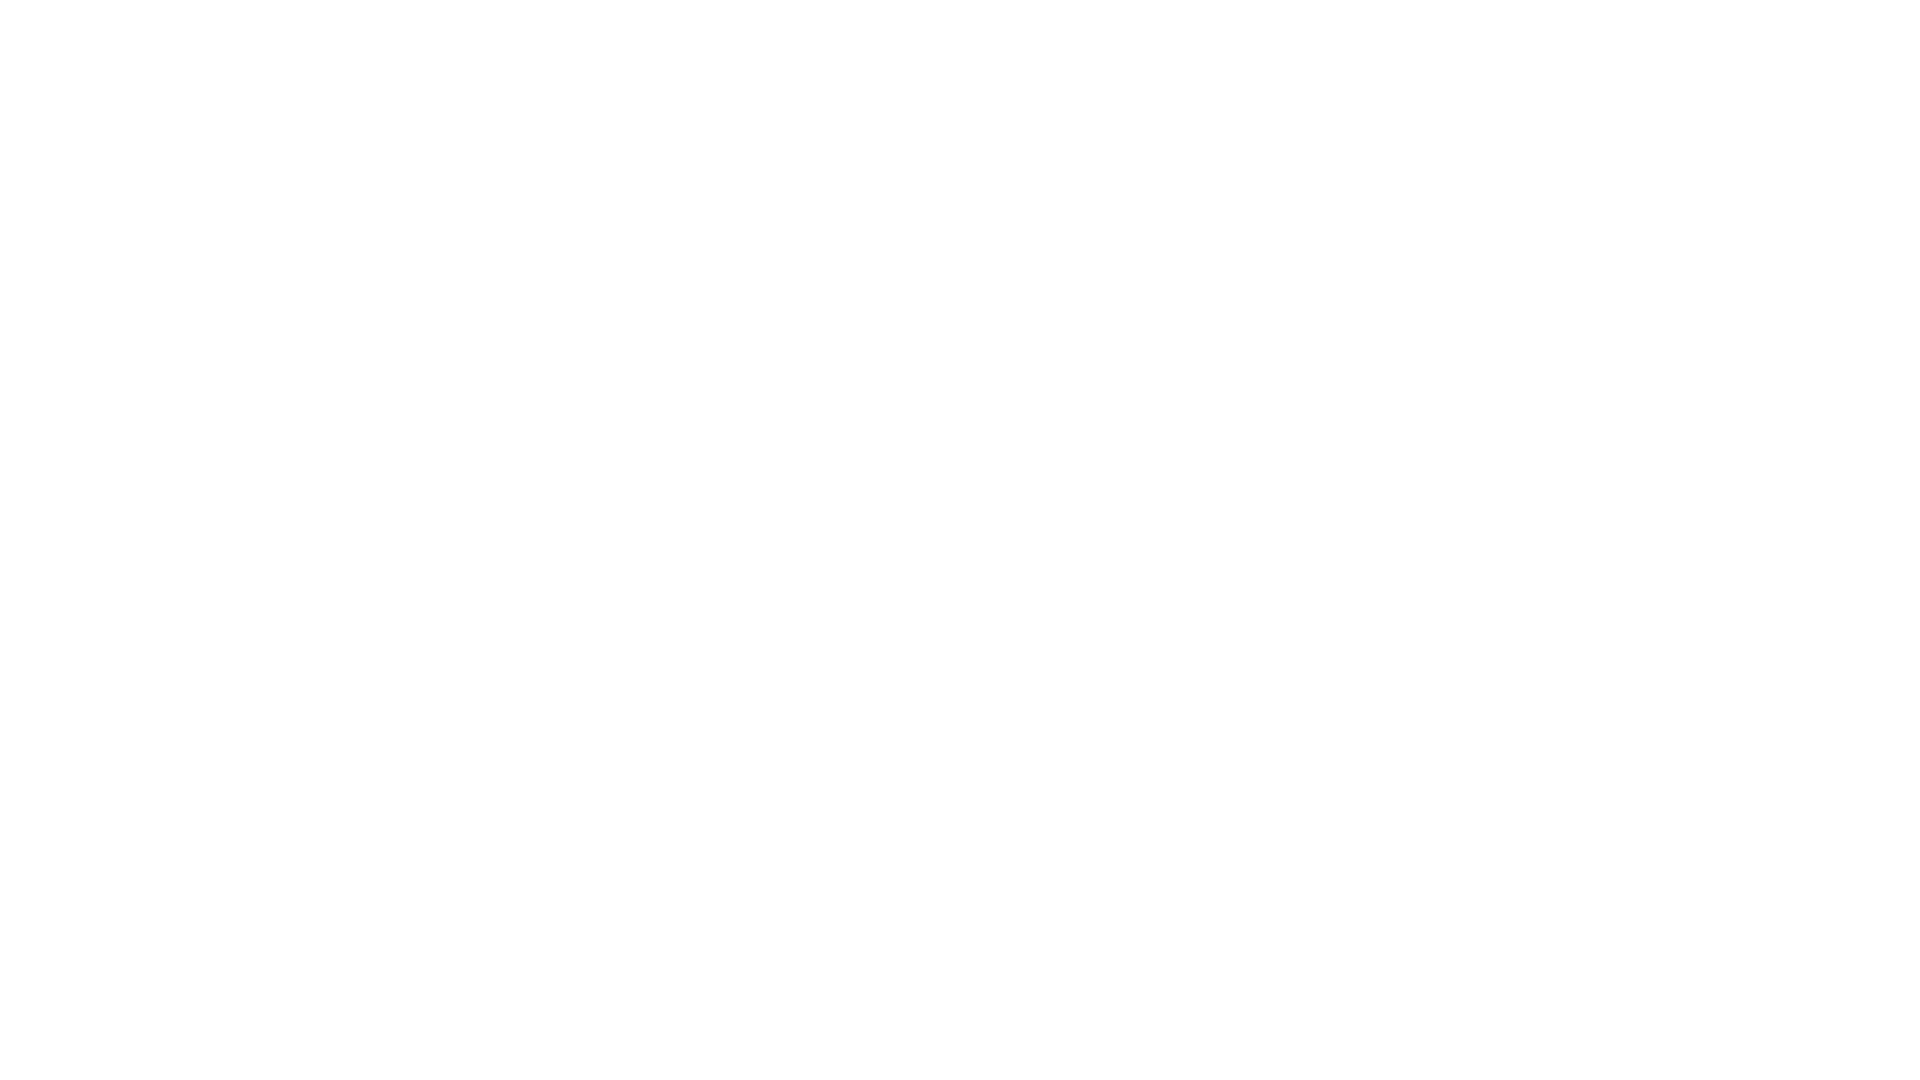 Breadline Britain